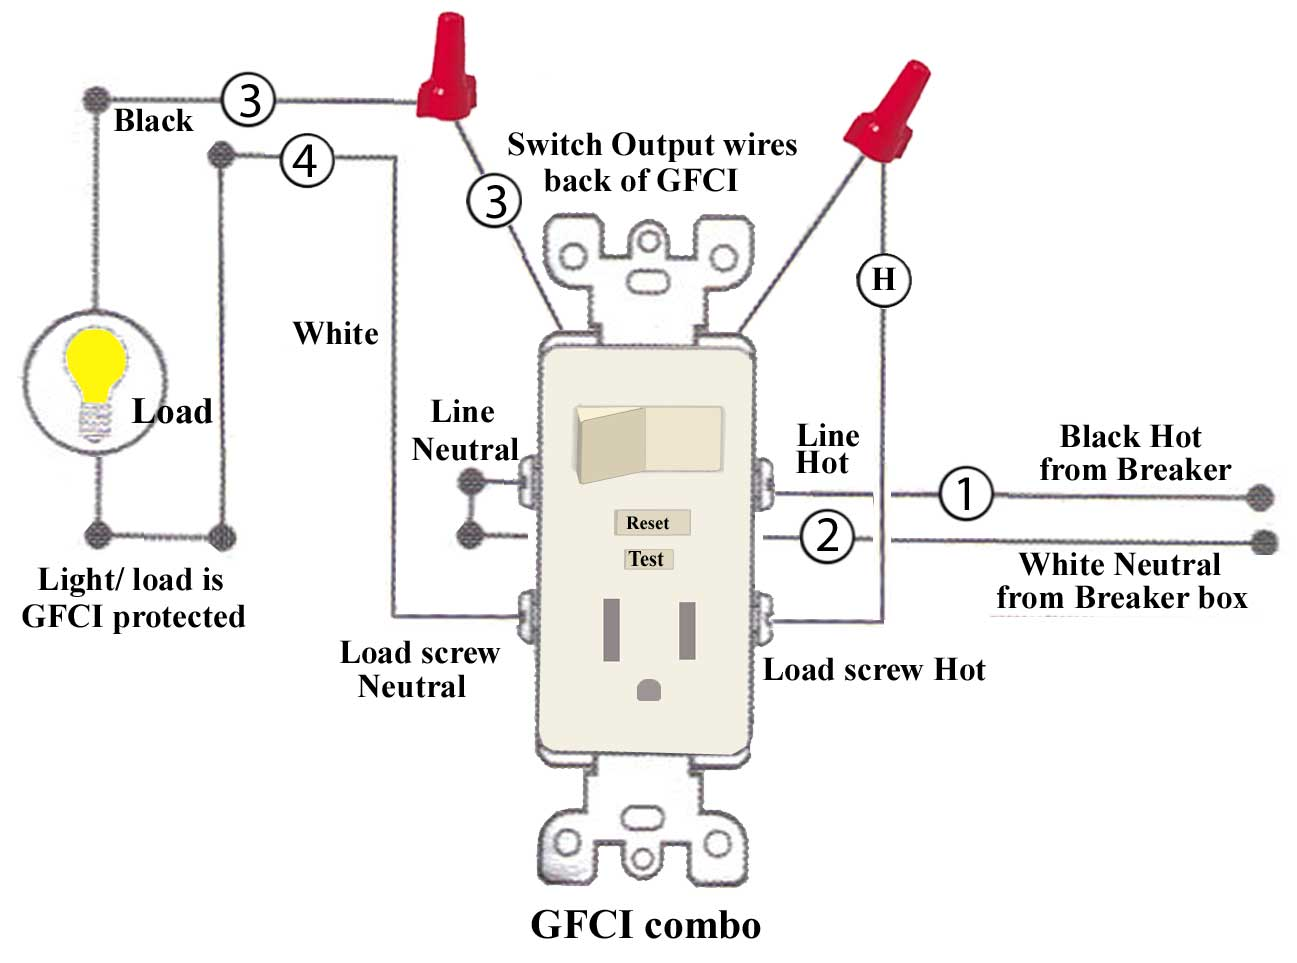 GFCI combo wiring update how to install and troubleshoot gfci gfci switch combo wiring diagram at soozxer.org